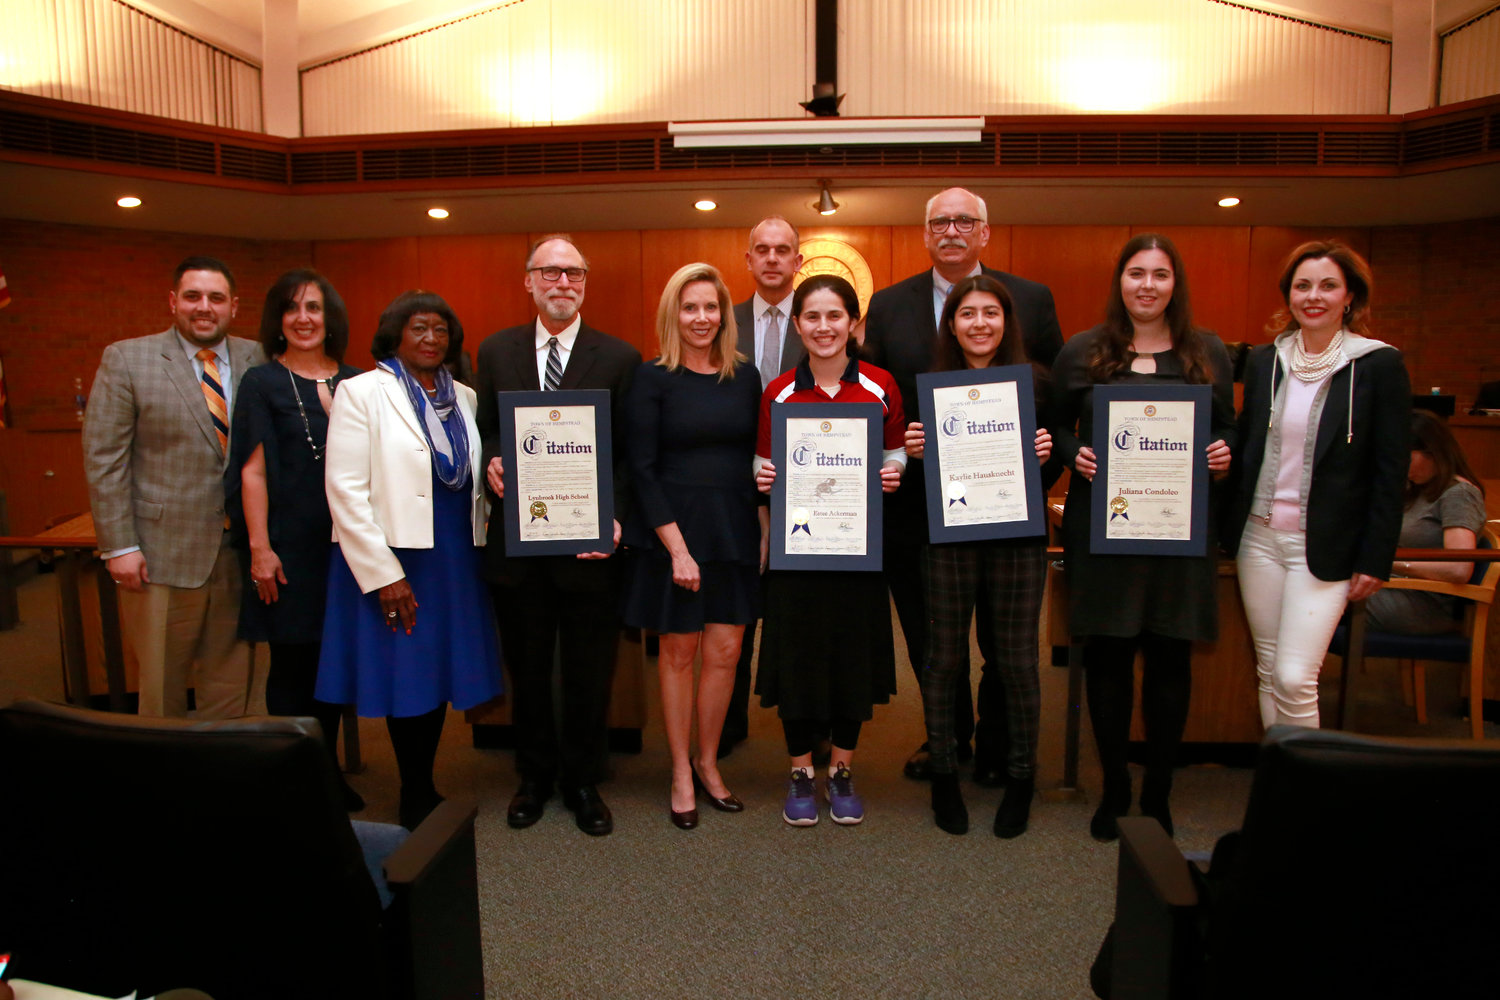 West Hempstead teen Estee Ackerman, center, wearing red, received a citation from the Town of Hempstead on Feb. 5 for winning two gold medals in table tennis.